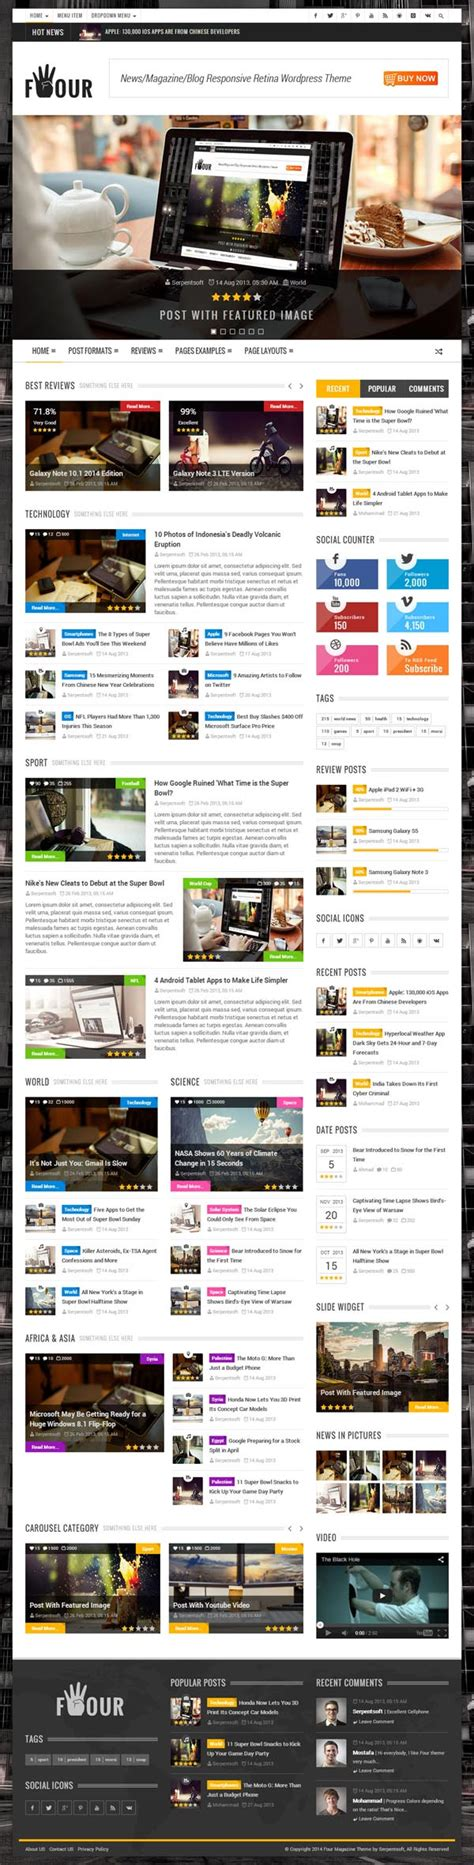 html5 and css3 responsive templates with amazing ux